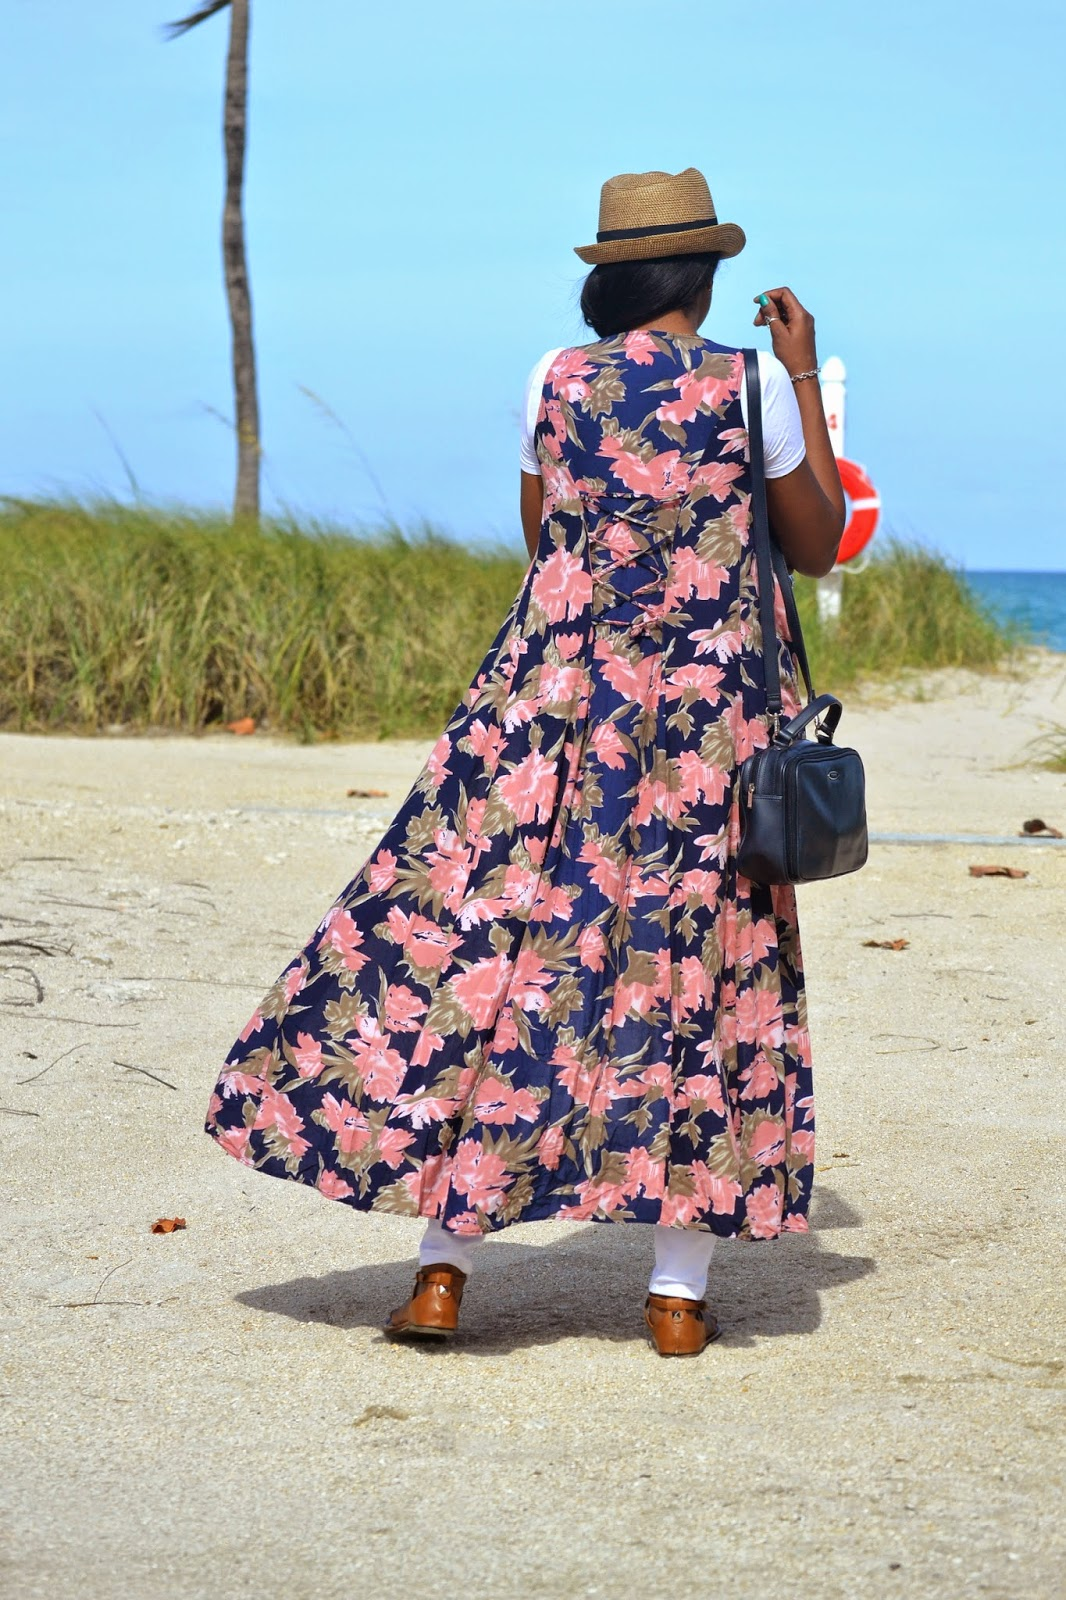 relaxed vacation style wearing open reverse floral print dress